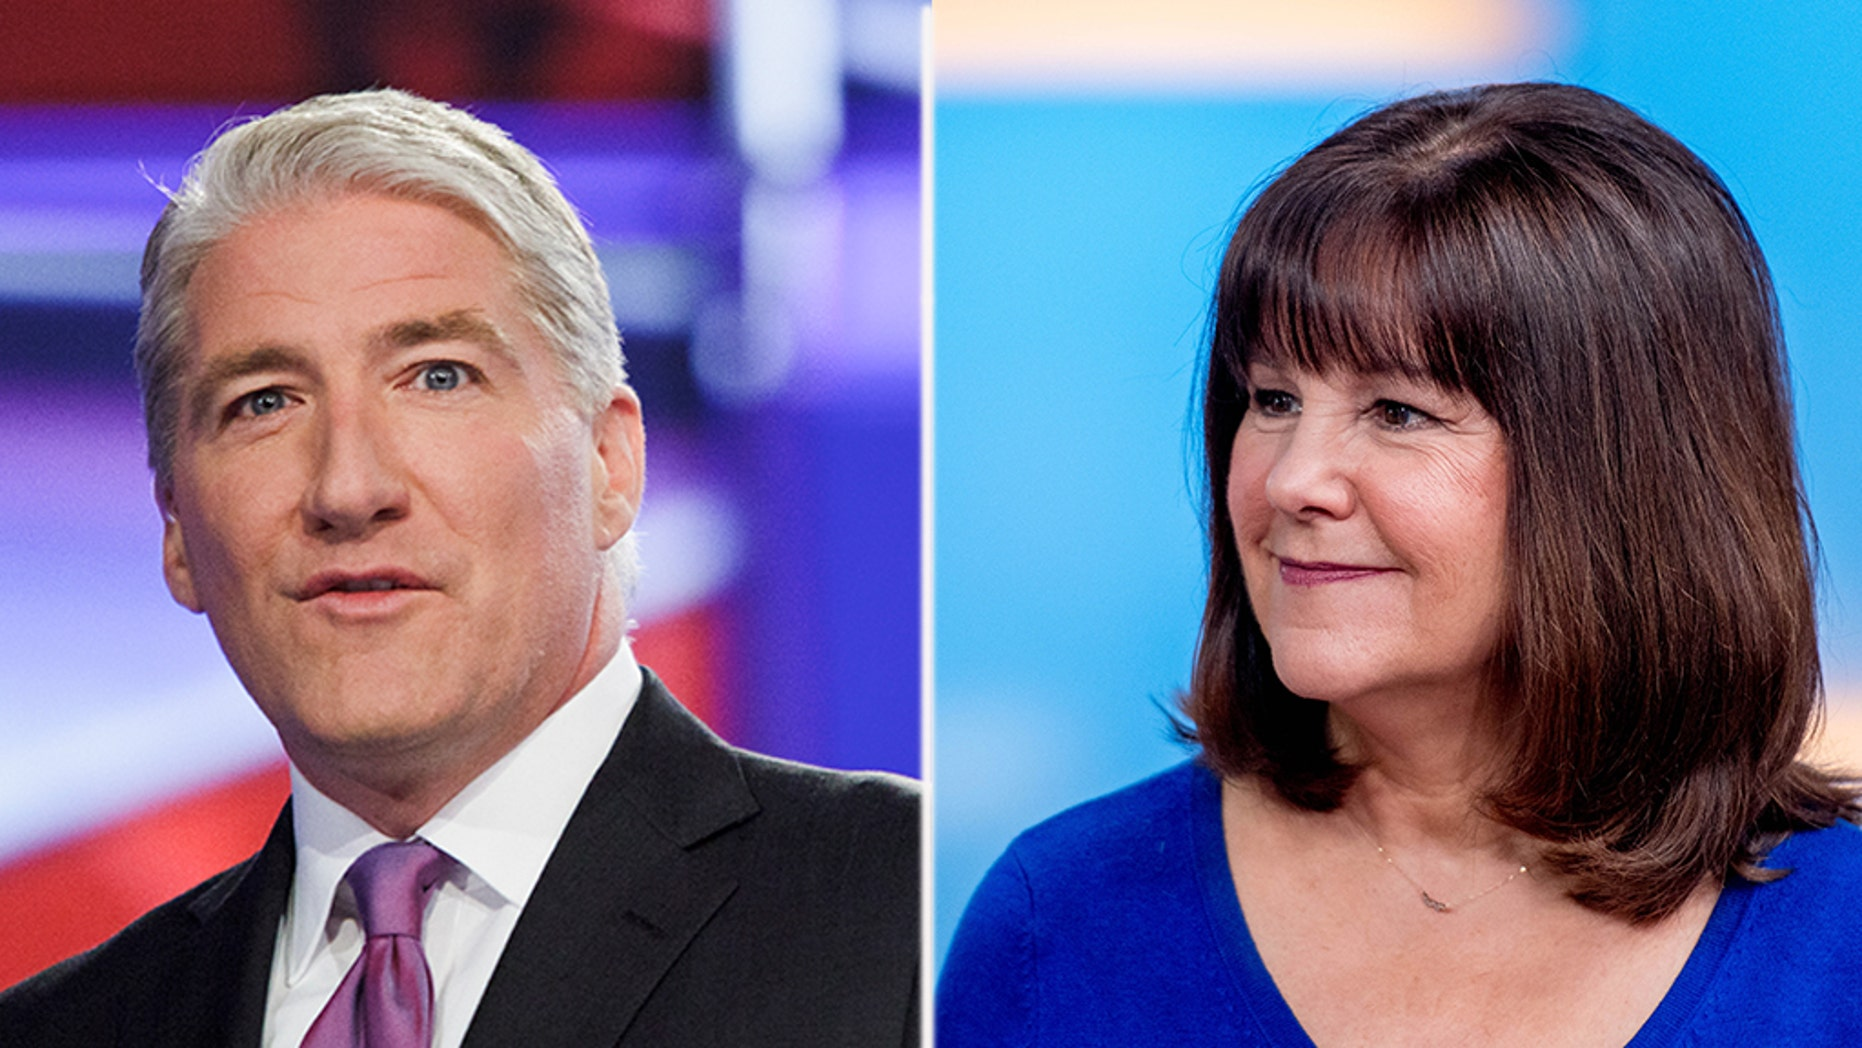 CNN's John King raised eyebrows with a question about second lady Karen Pence.